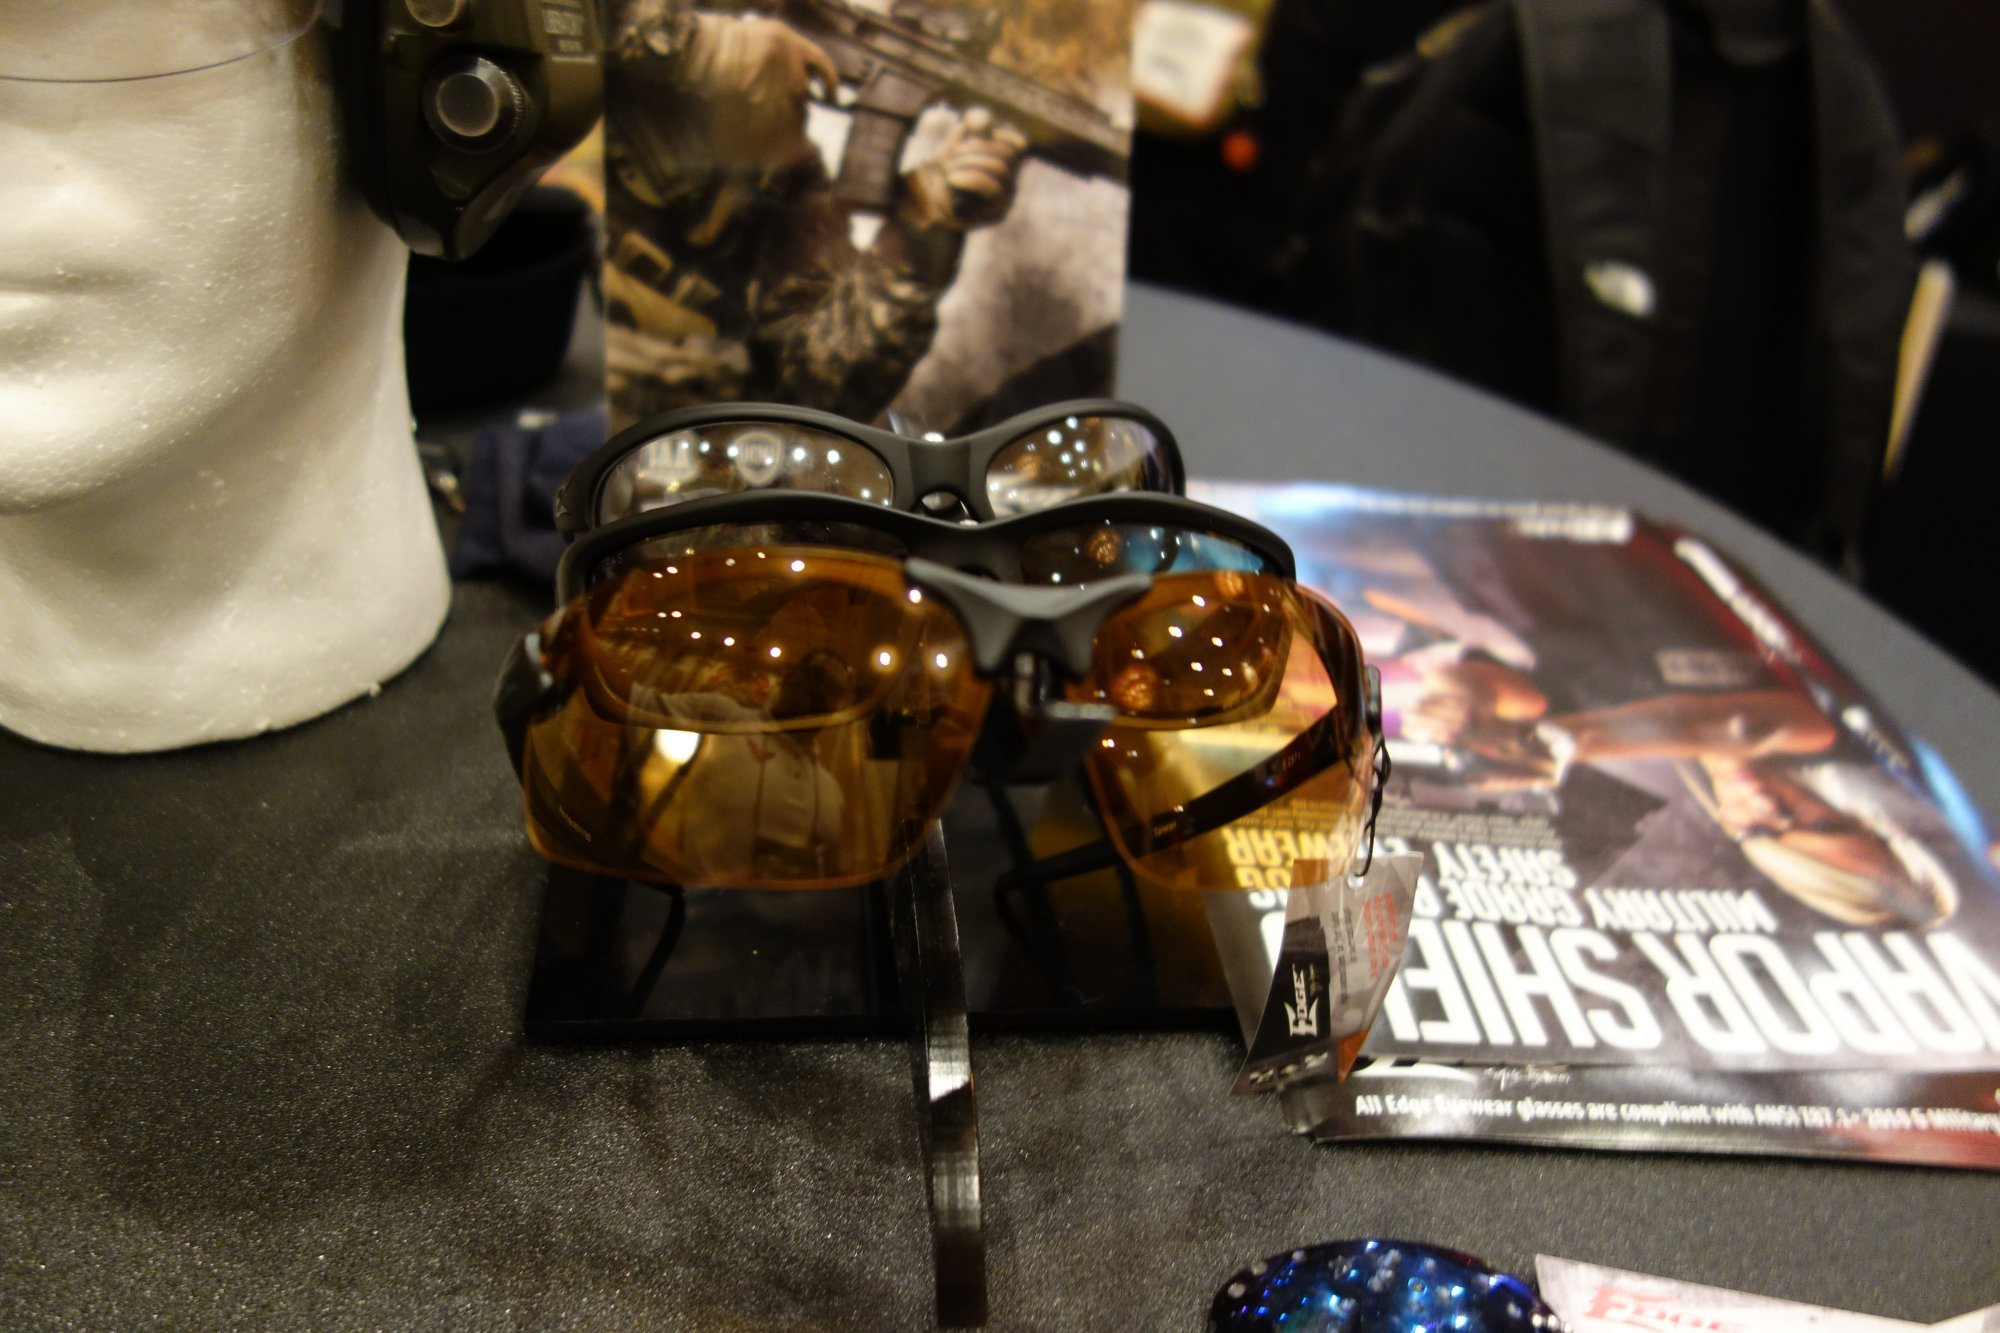 Edge Tactical Eyewear Vapor Shield Anti Fog Ballistic Eyepro Tactical Eyepro Eye Protection SHOT Show 2013 David Crane DefenseReview.com DR 11 Edge Tactical Eyewear (ETE) Vapor Shield Anti Fog Ballistic Eyepro (Eye Protection)/Shooting Glasses: Fogproof Tactical Eyepro for Mil/LE Tactical Assaulters/Operators and Civilian Tactical Shooters